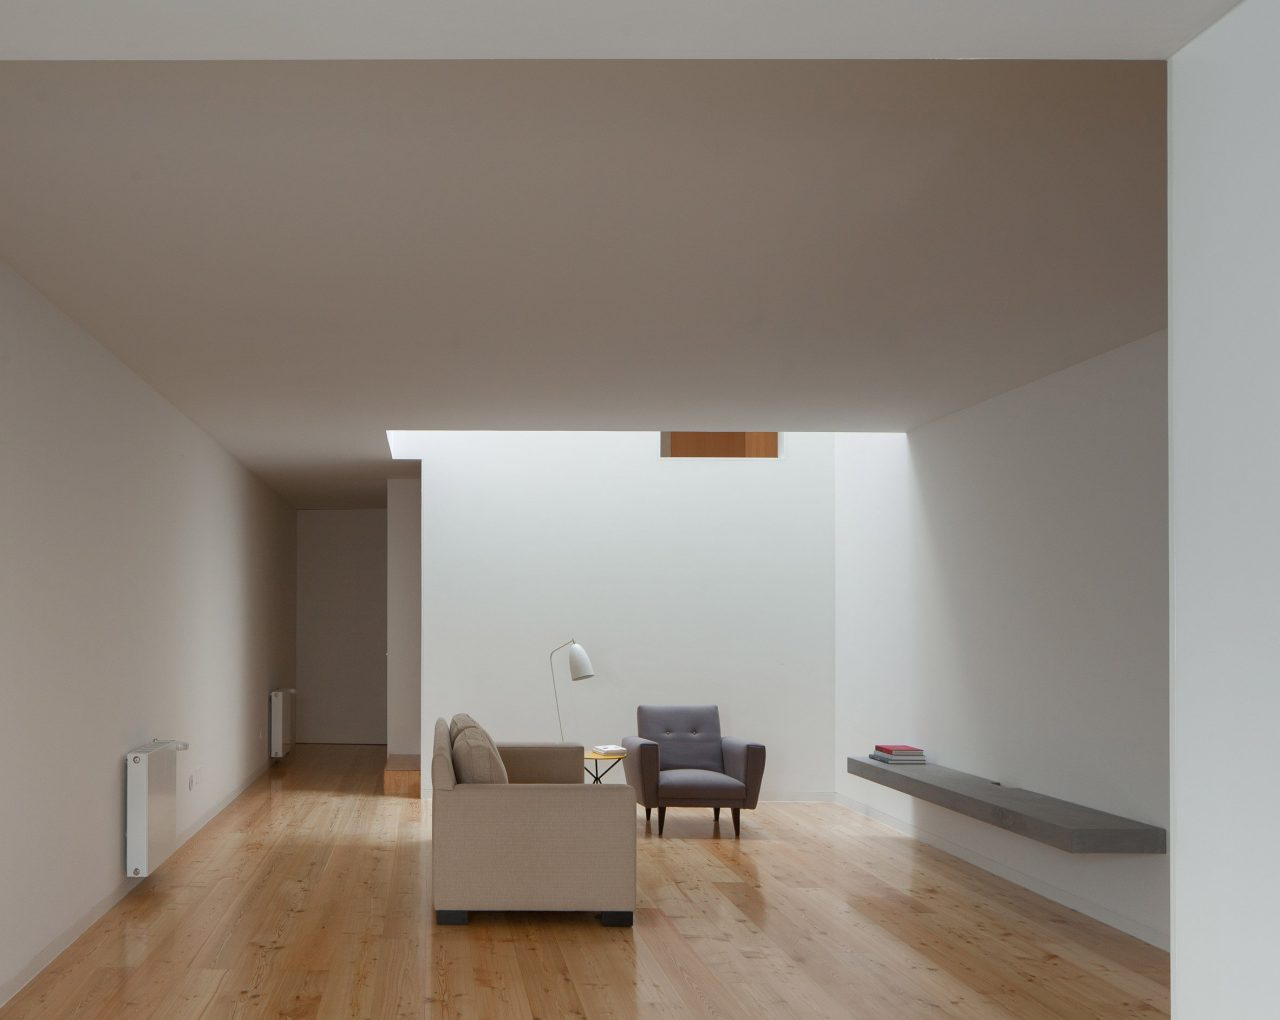 Casa Boavista by Pablo Pita Includes Skylights and Minimal Interiors casa boavista Casa Boavista by Pablo Pita Includes Skylights and Minimal Interiors Casa Boavista by Pablo Pita Includes Skylights and Minimal Interiors 6